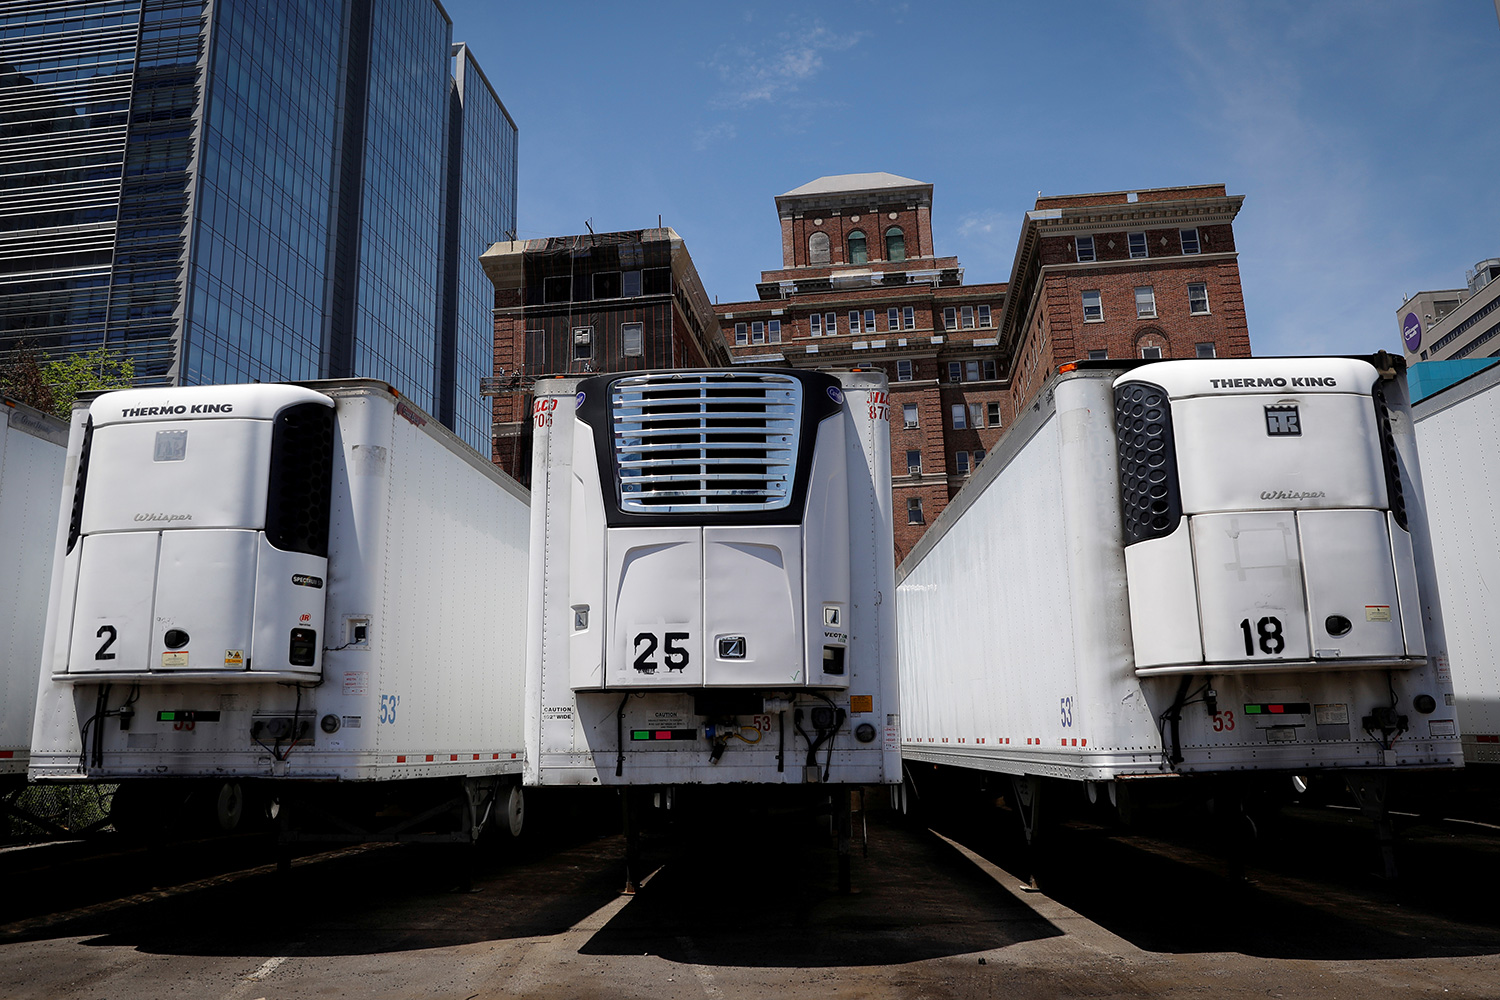 Image shows a row of huge refrigerated trucks parked together amid buildings under a clear blue sky.